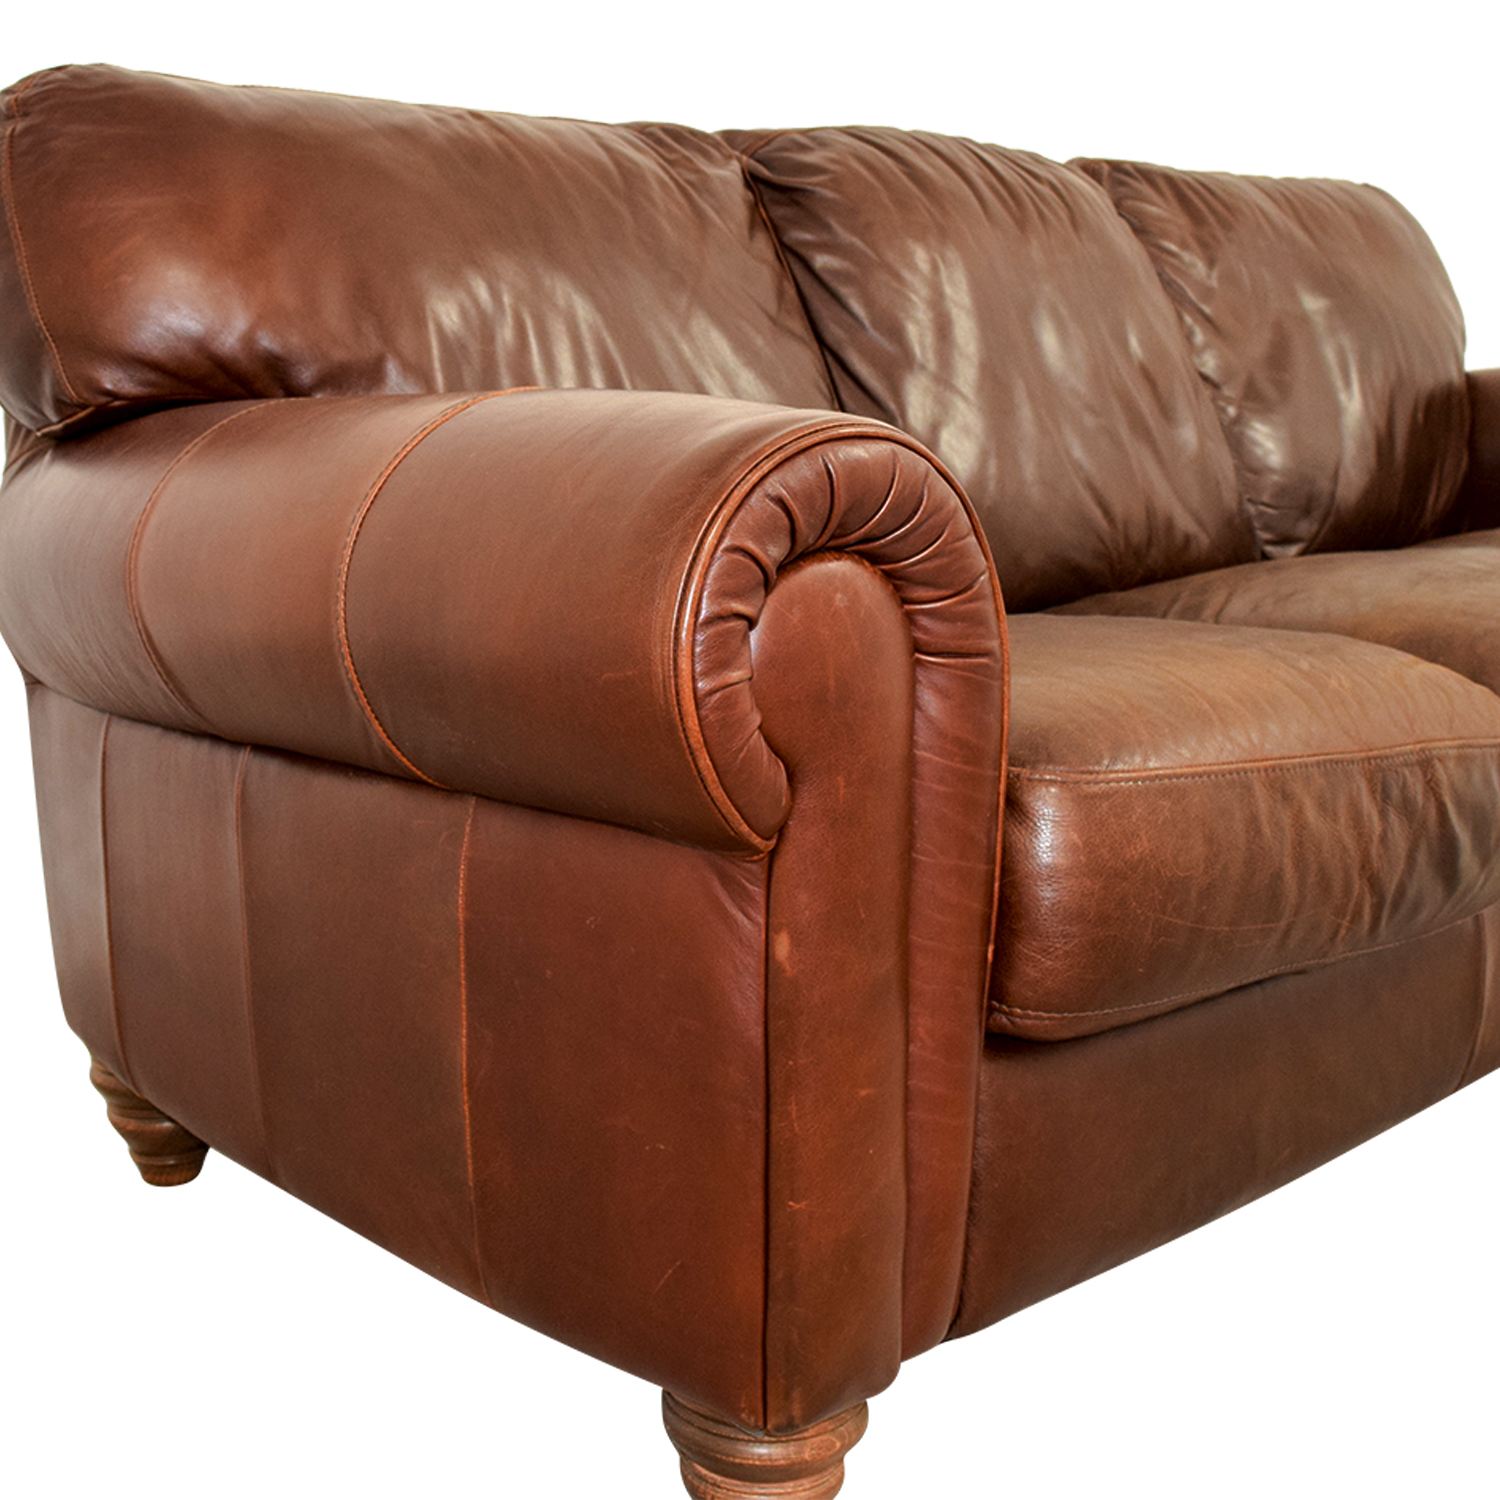 Used Brown Three Cushion Leather Couch Sofas